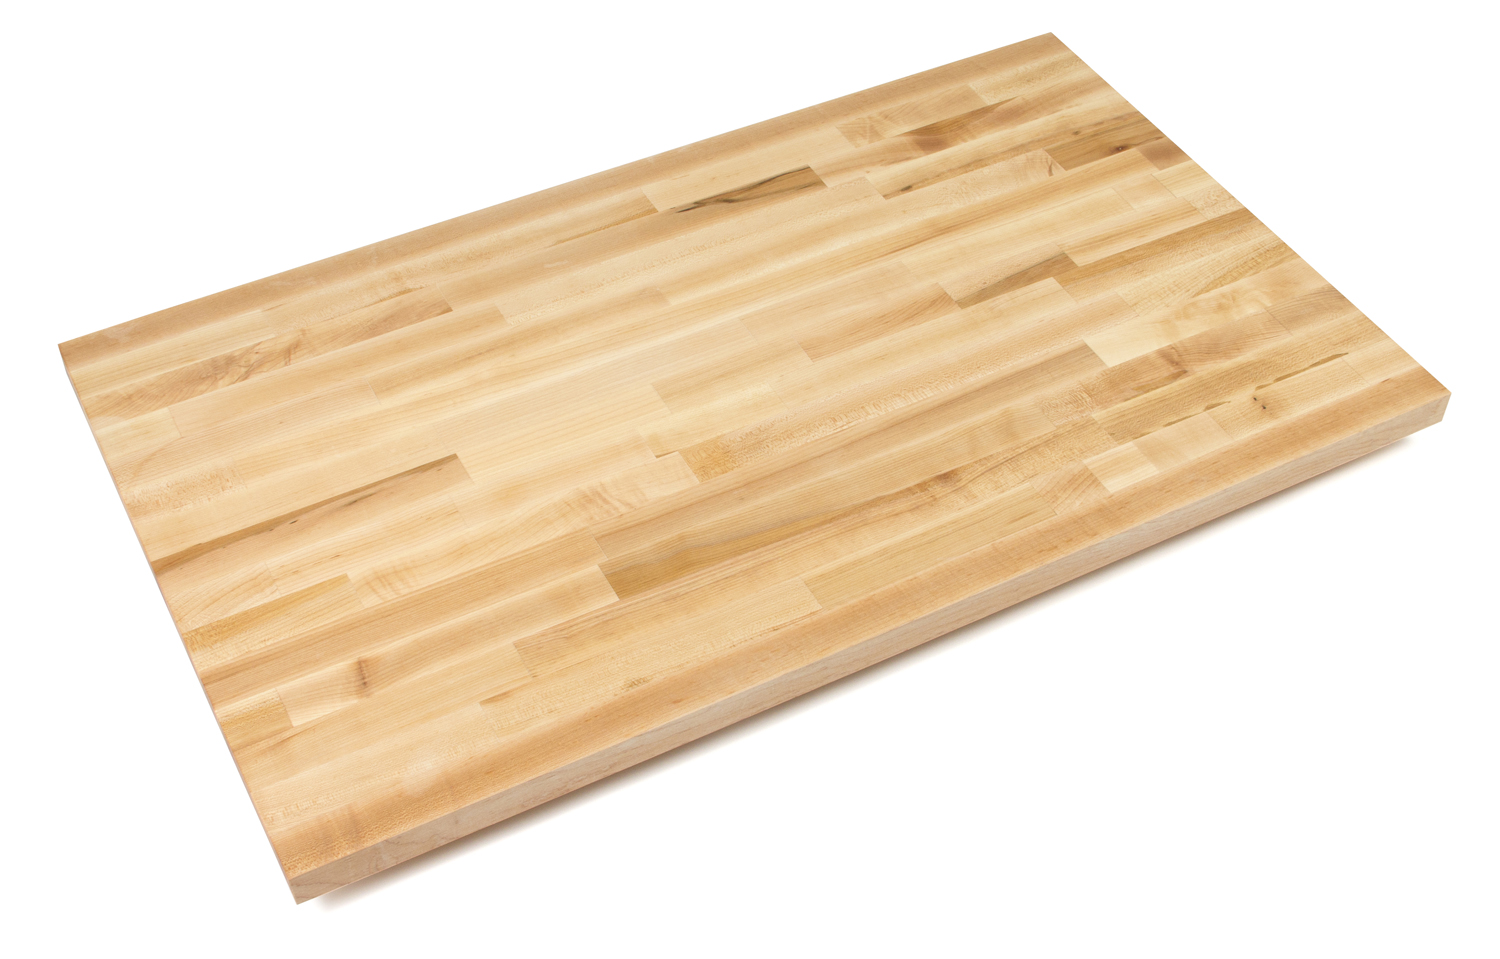 1.5 inch blended maple countertop 30 inches wide - John Boos